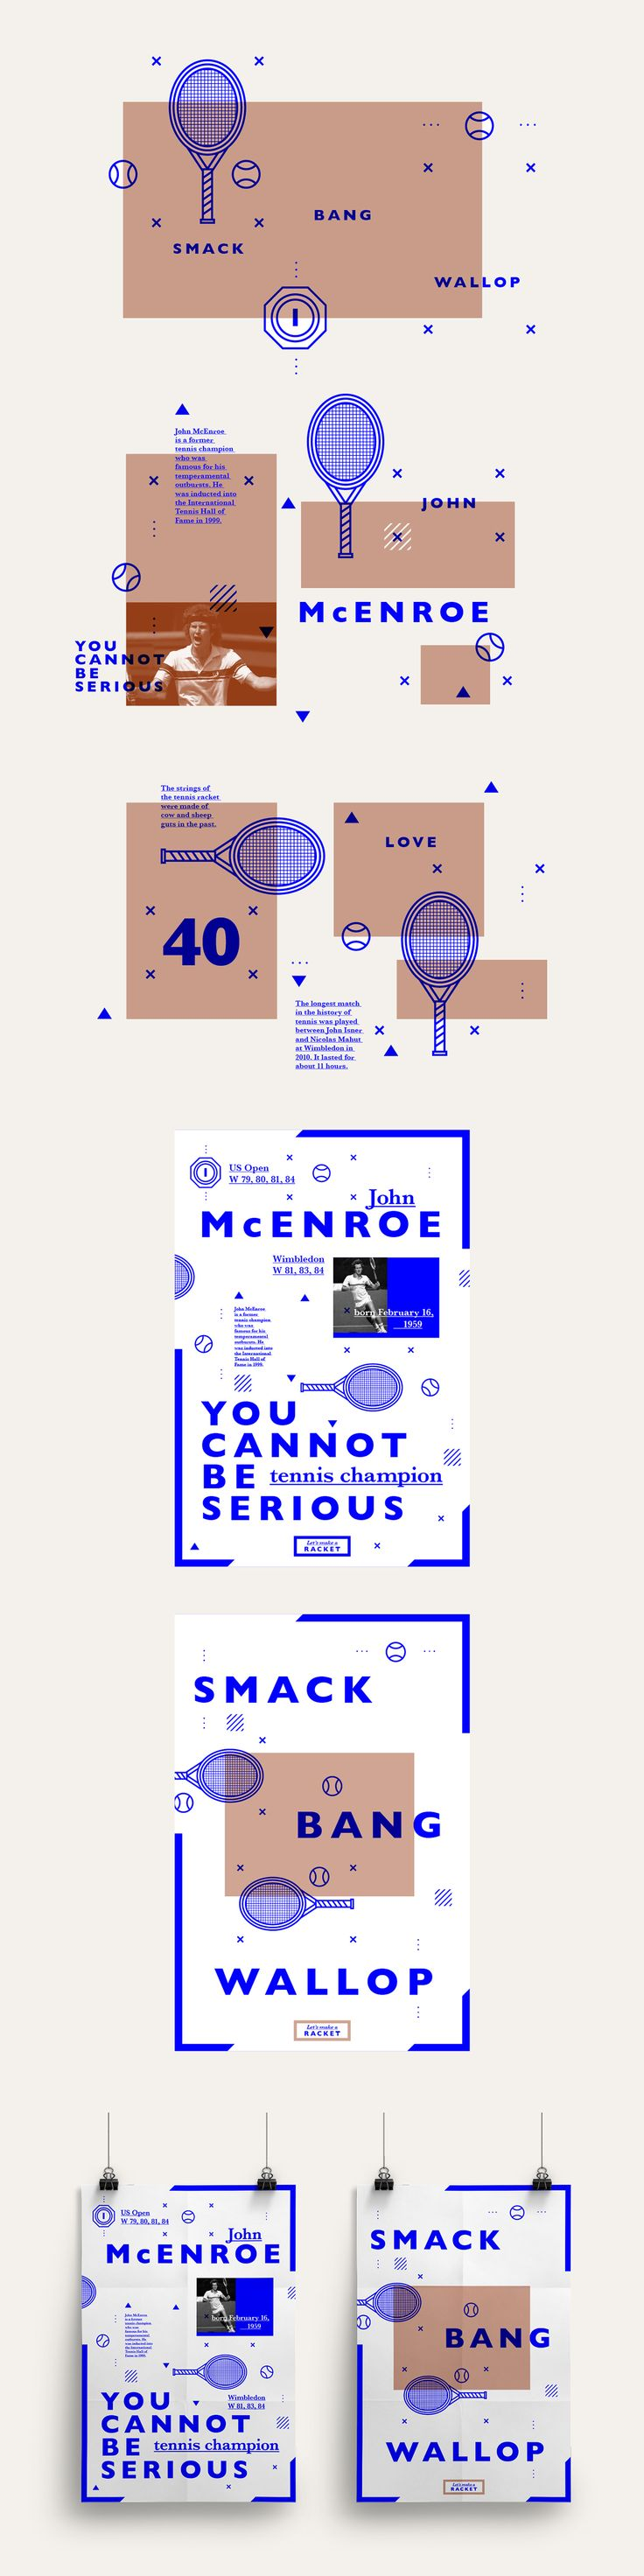 best graphic design images on pinterest u other stories